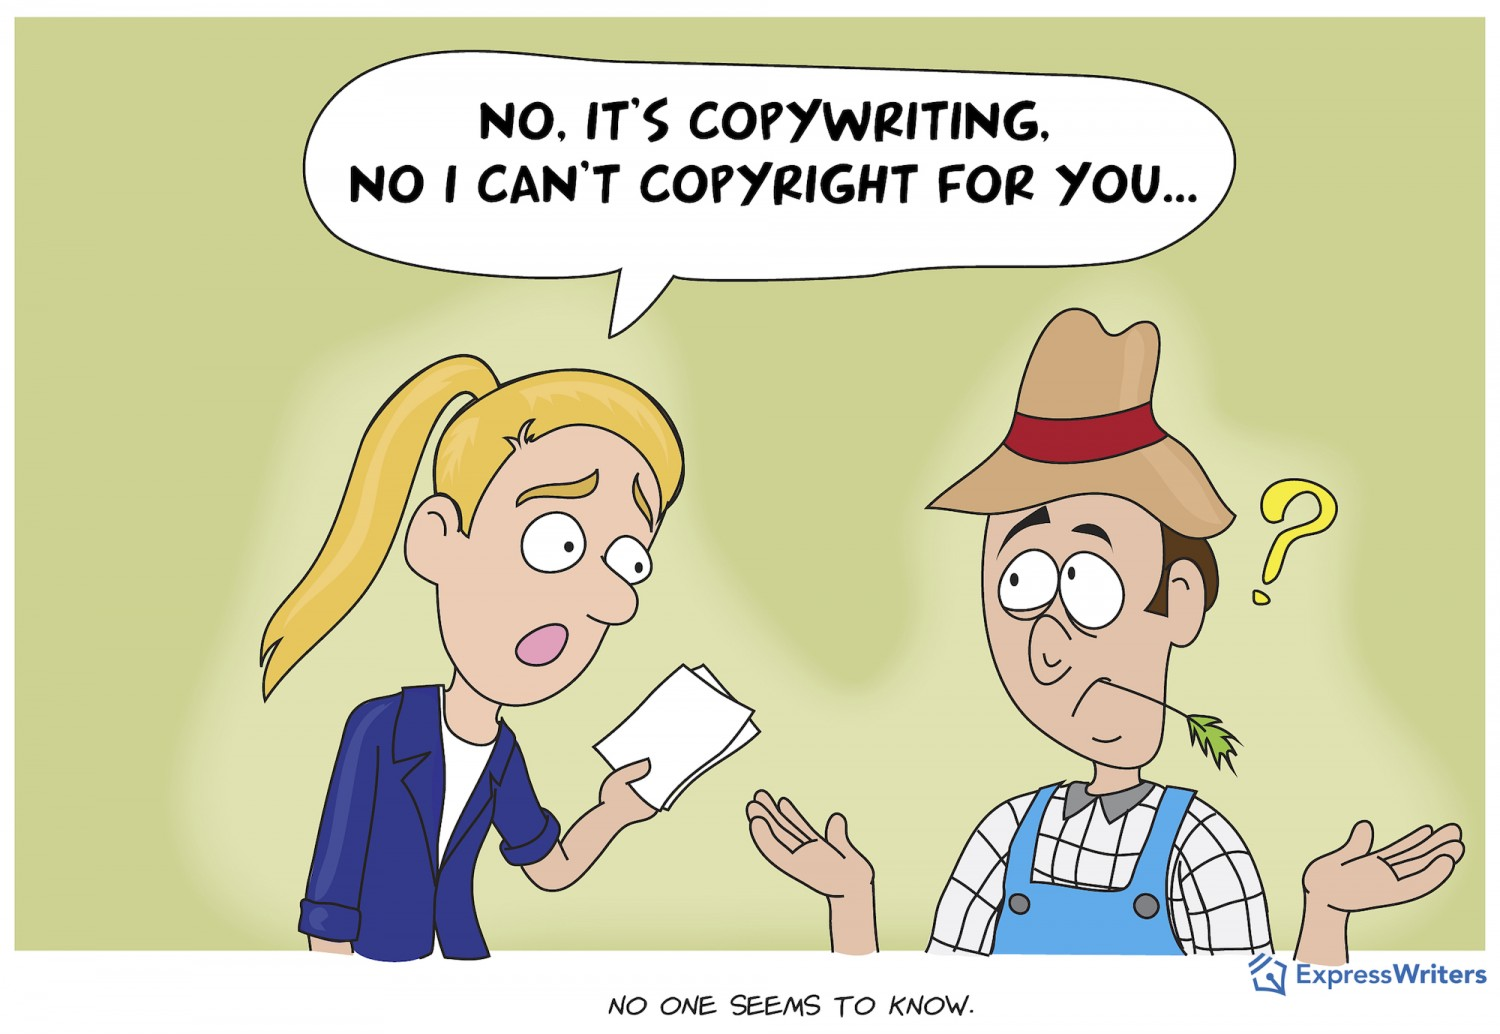 copywriter vs copyrighter